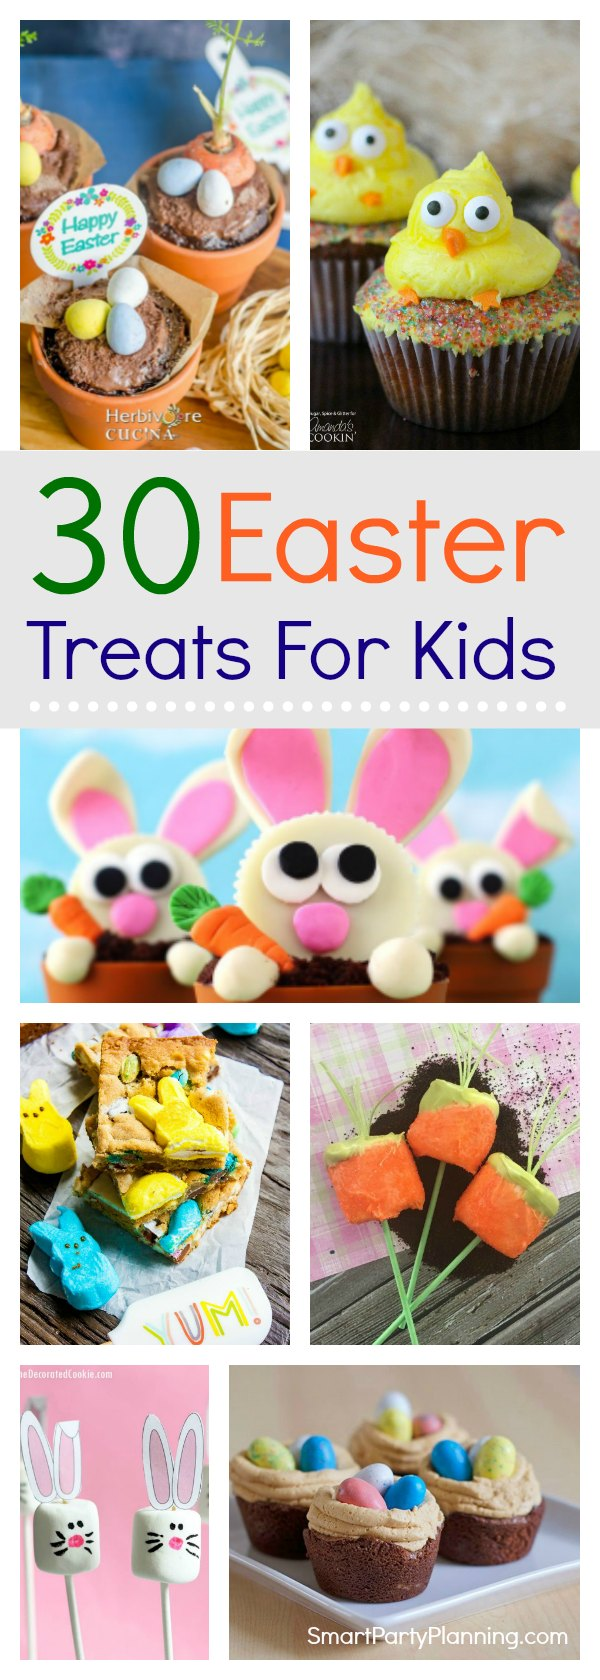 30 amazing Easter treats for kids that they are going to absolutely LOVE.  These recipes are easy to make and are great for parties or for school. There are ideas that include chocolate, peeps, no-bake and non-chocolate treats.  The difficult decision will be deciding which one to make first! #Easter #Treatsforkids #Recipes #Easterideas